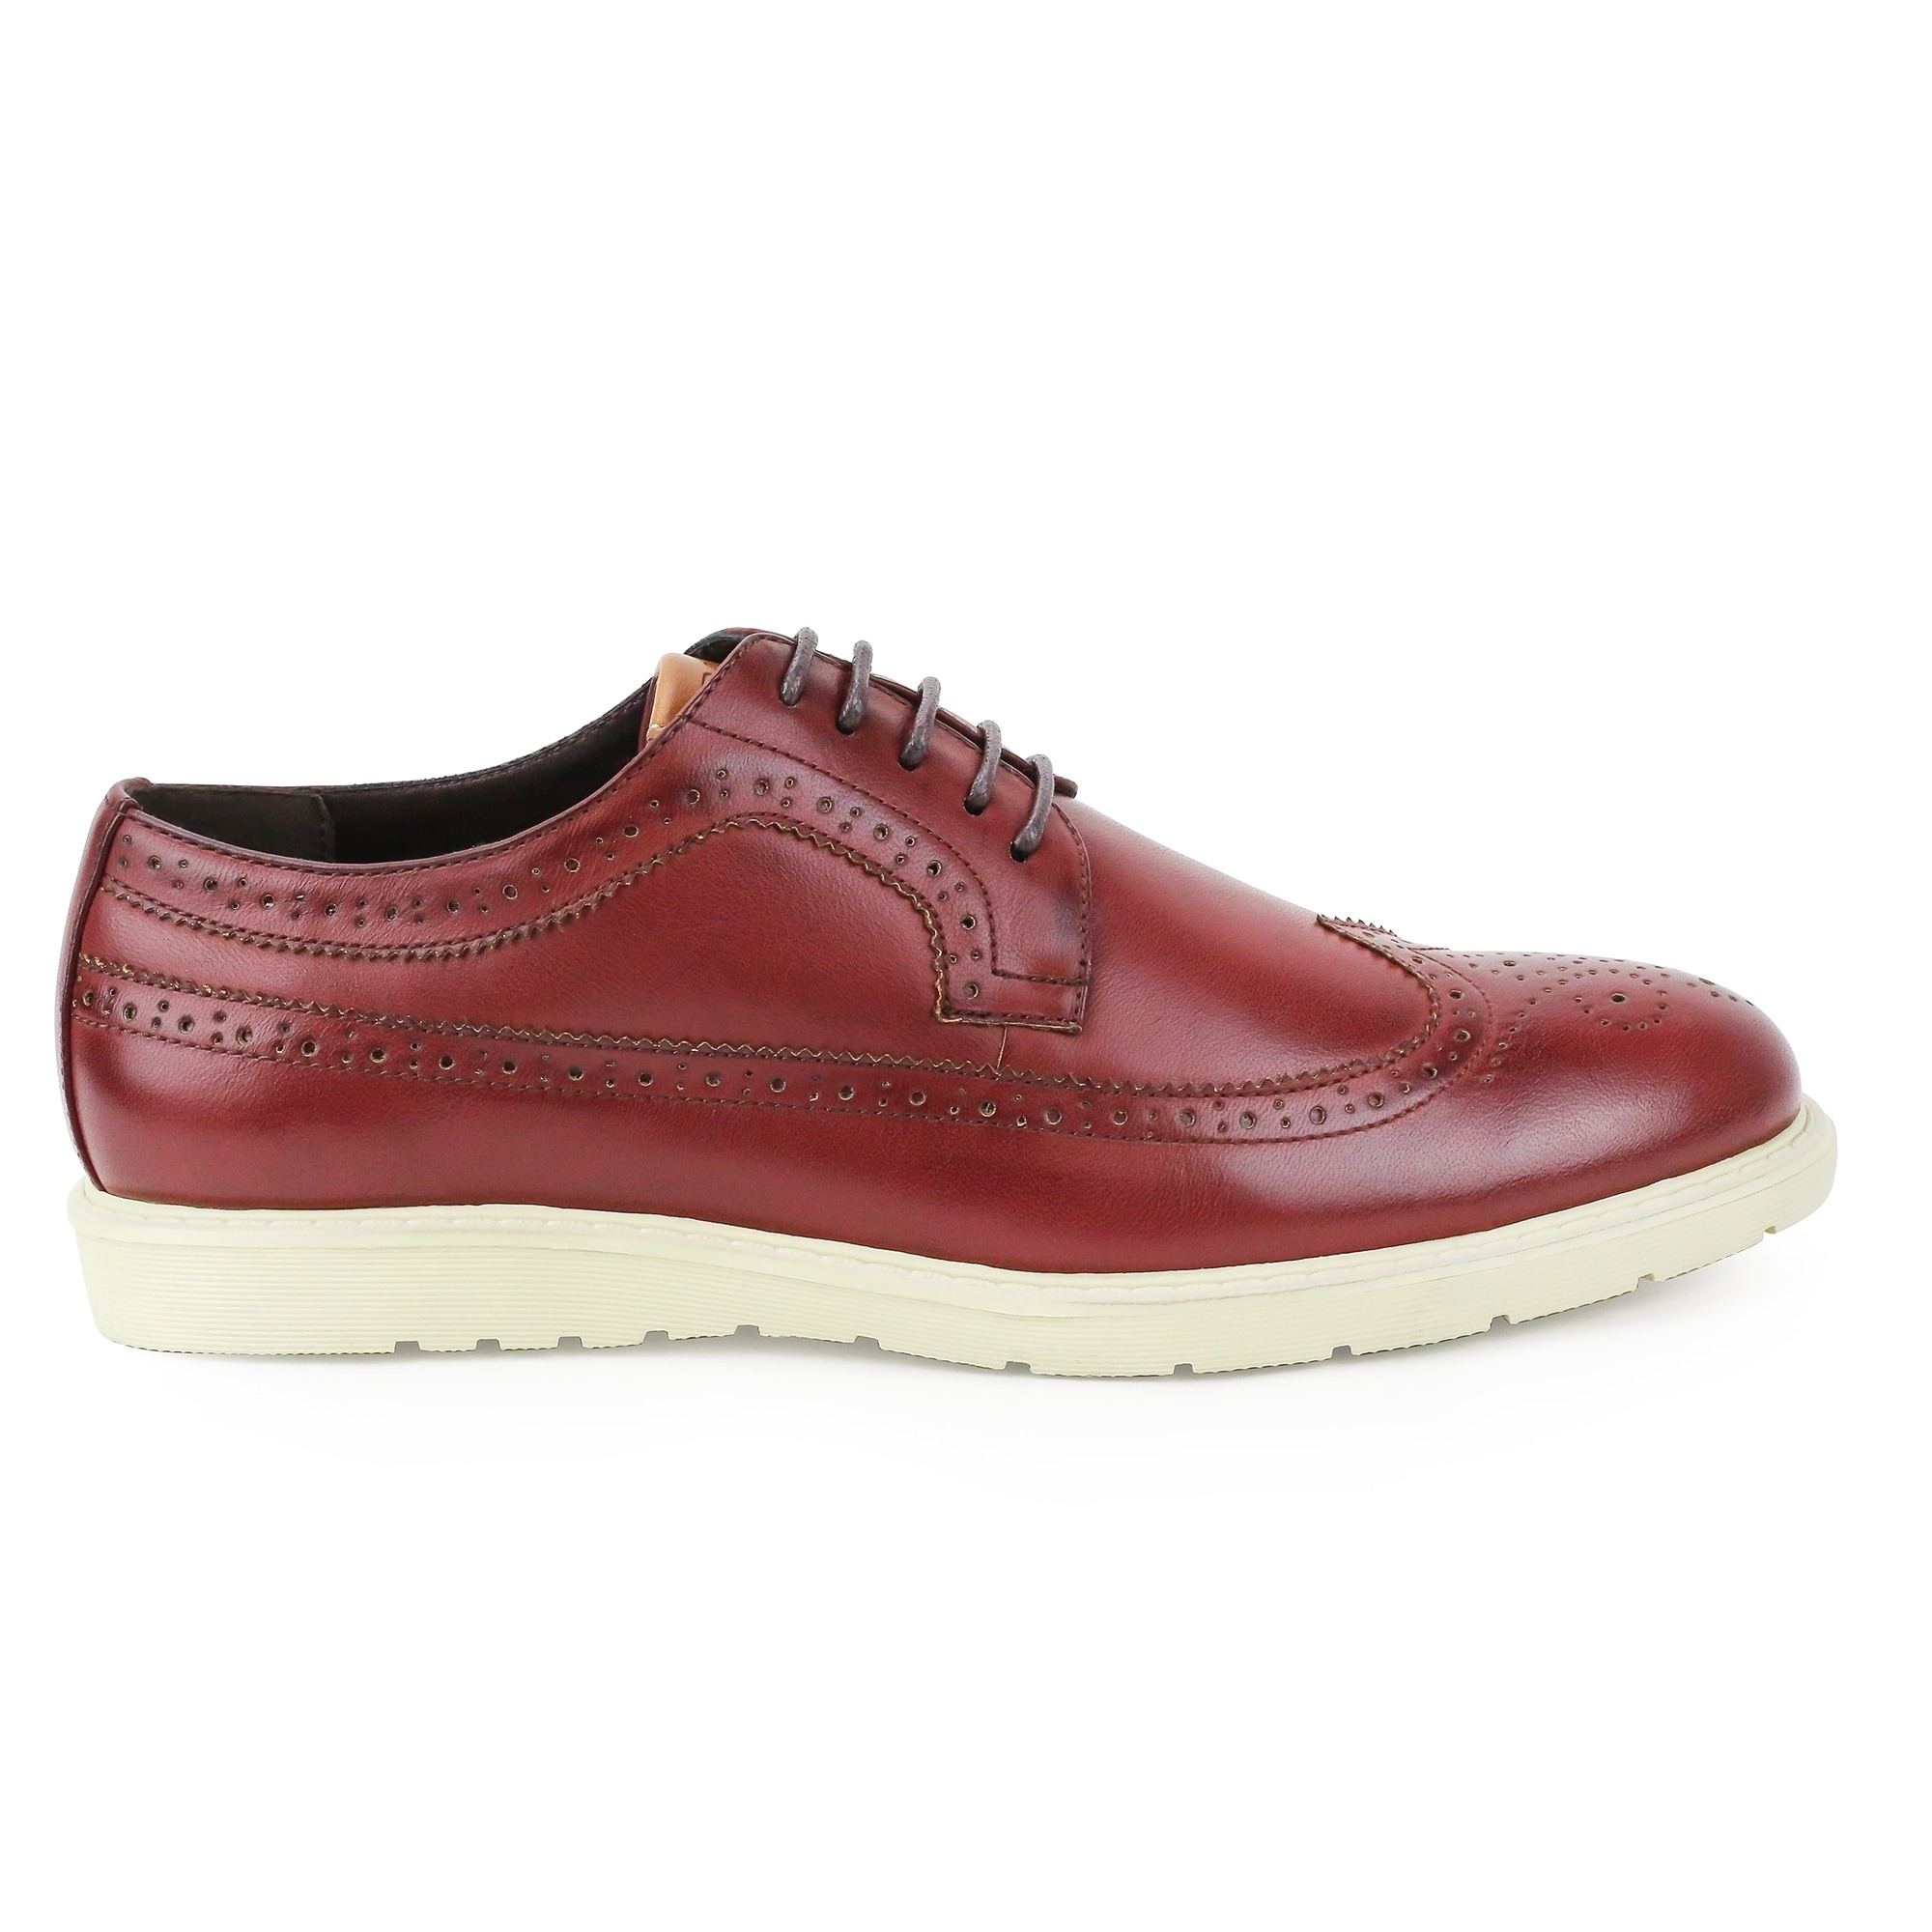 Xray Halsey Wingtip Dressy clearance under $60 pre order online outlet footaction free shipping discount NScpbQiyi